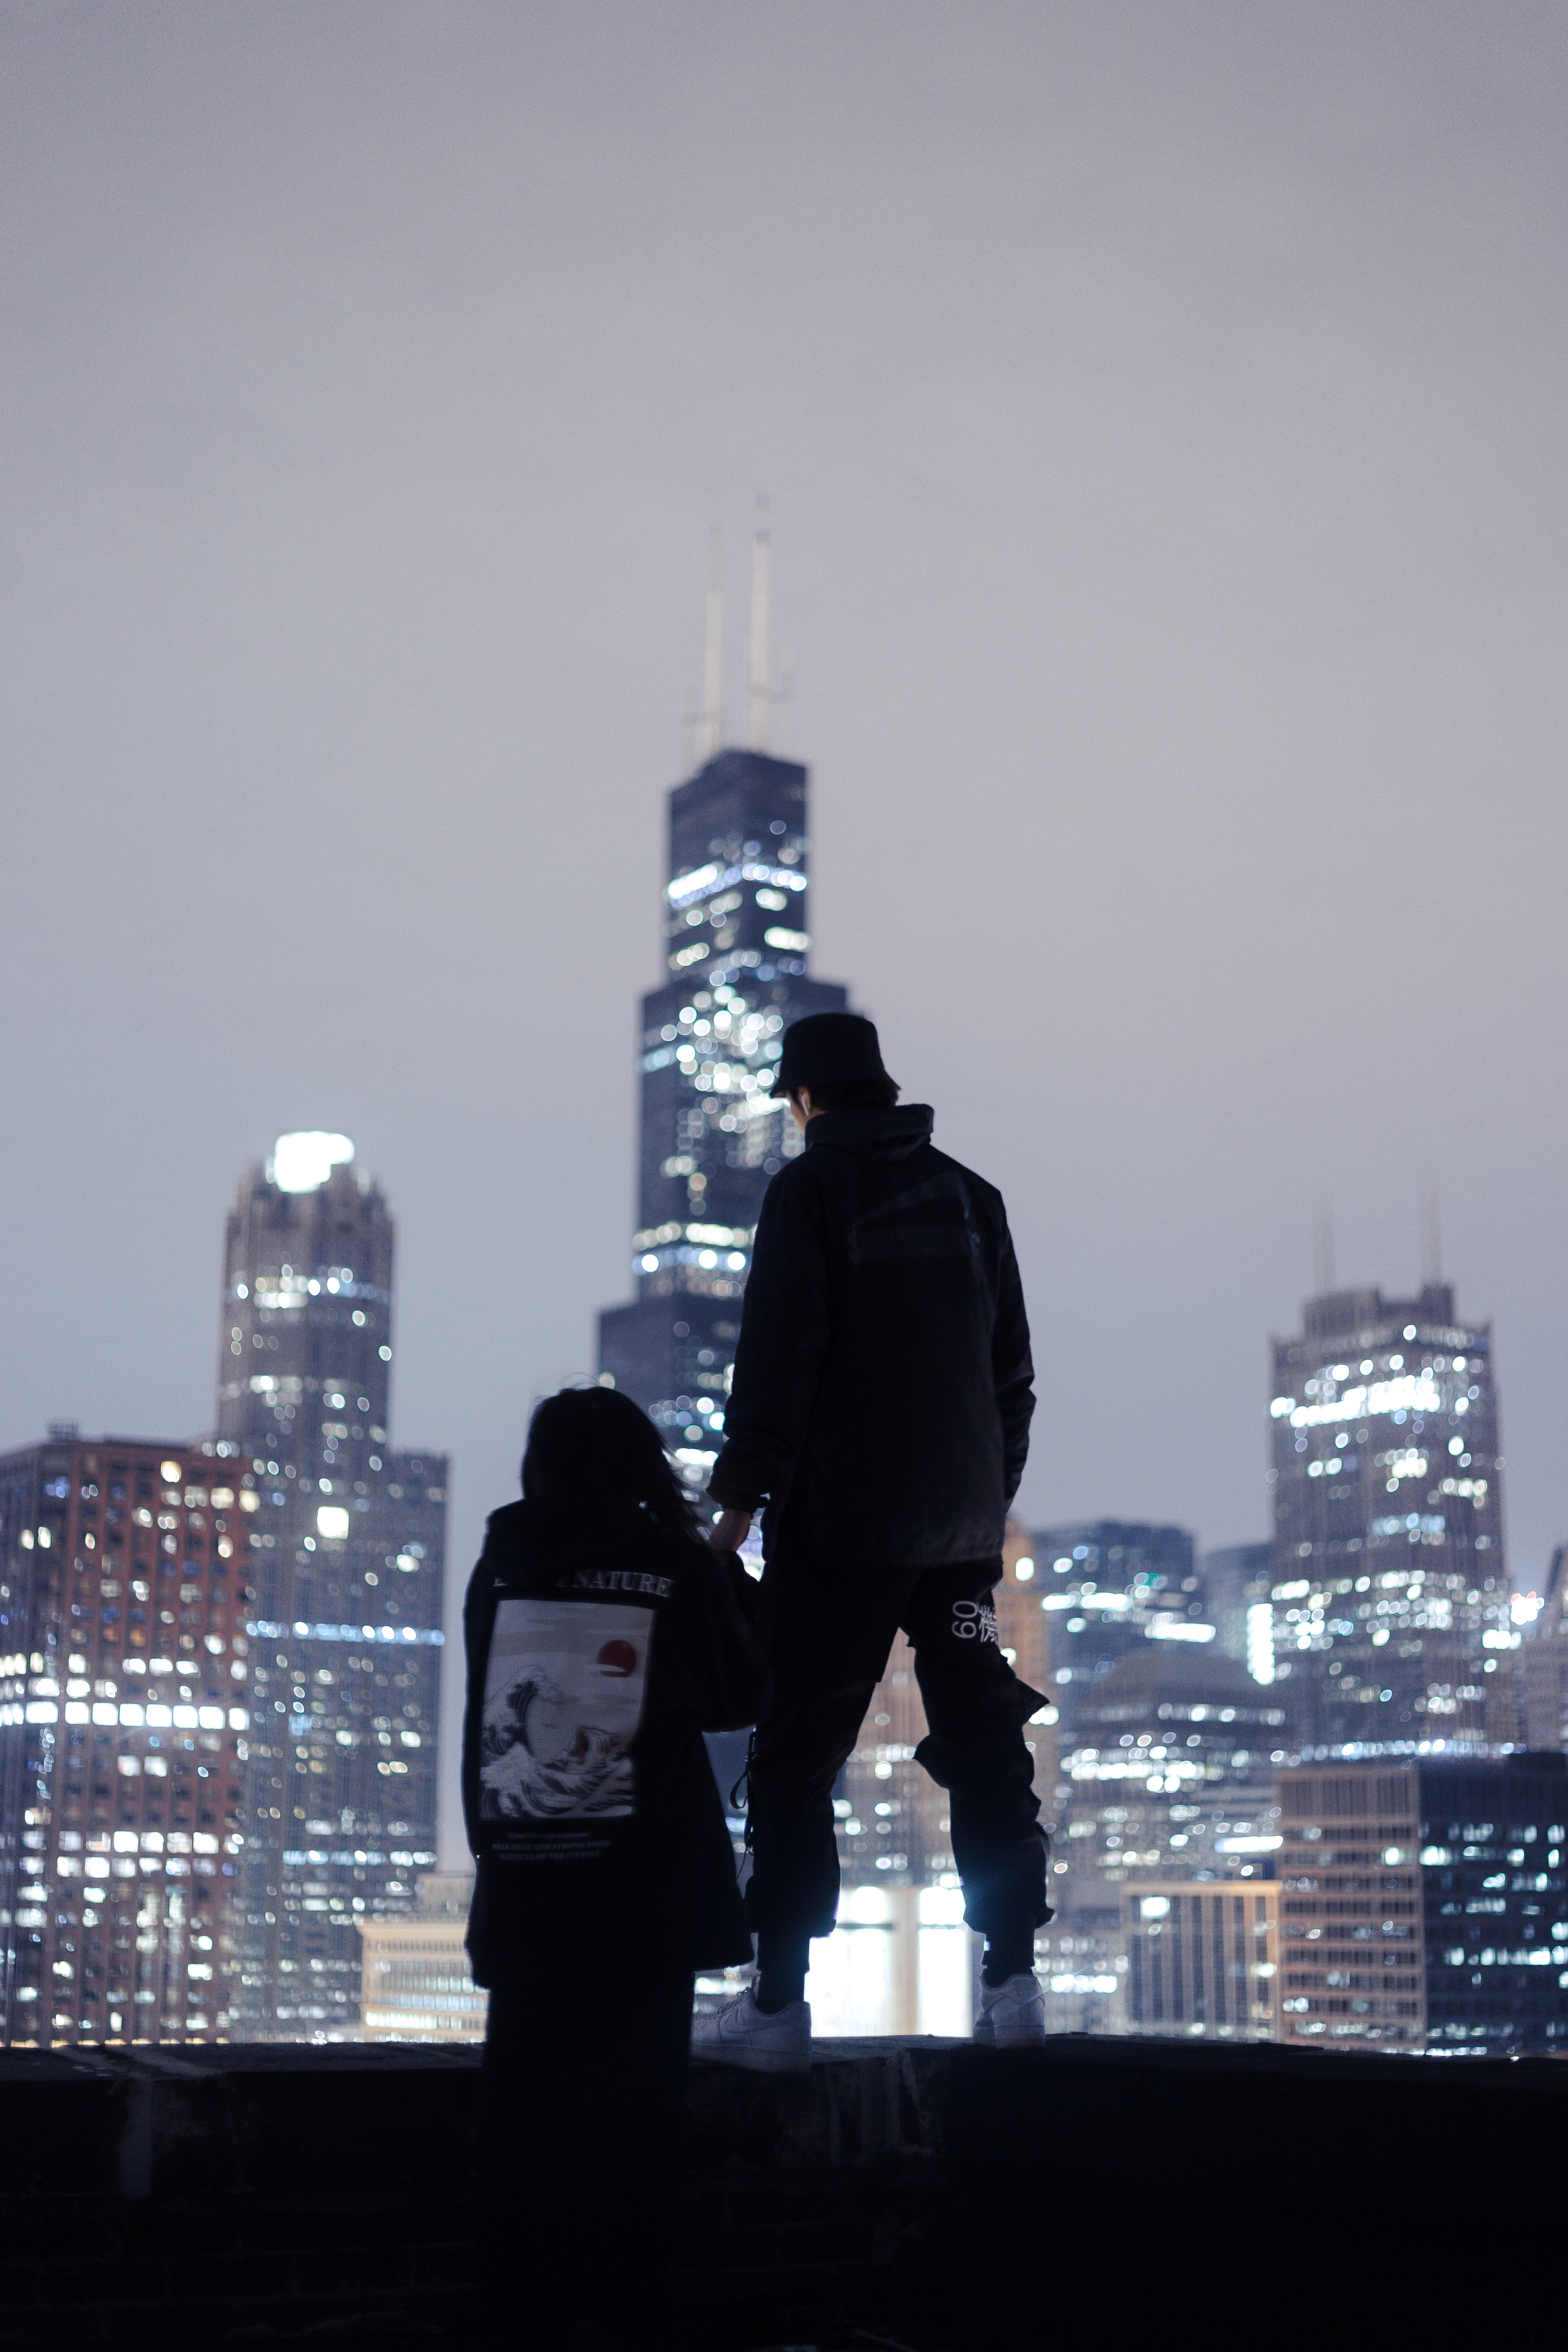 126396 download wallpaper Dark, Couple, Pair, Roof, Love, Night City, Skyscrapers, Overview, Review screensavers and pictures for free